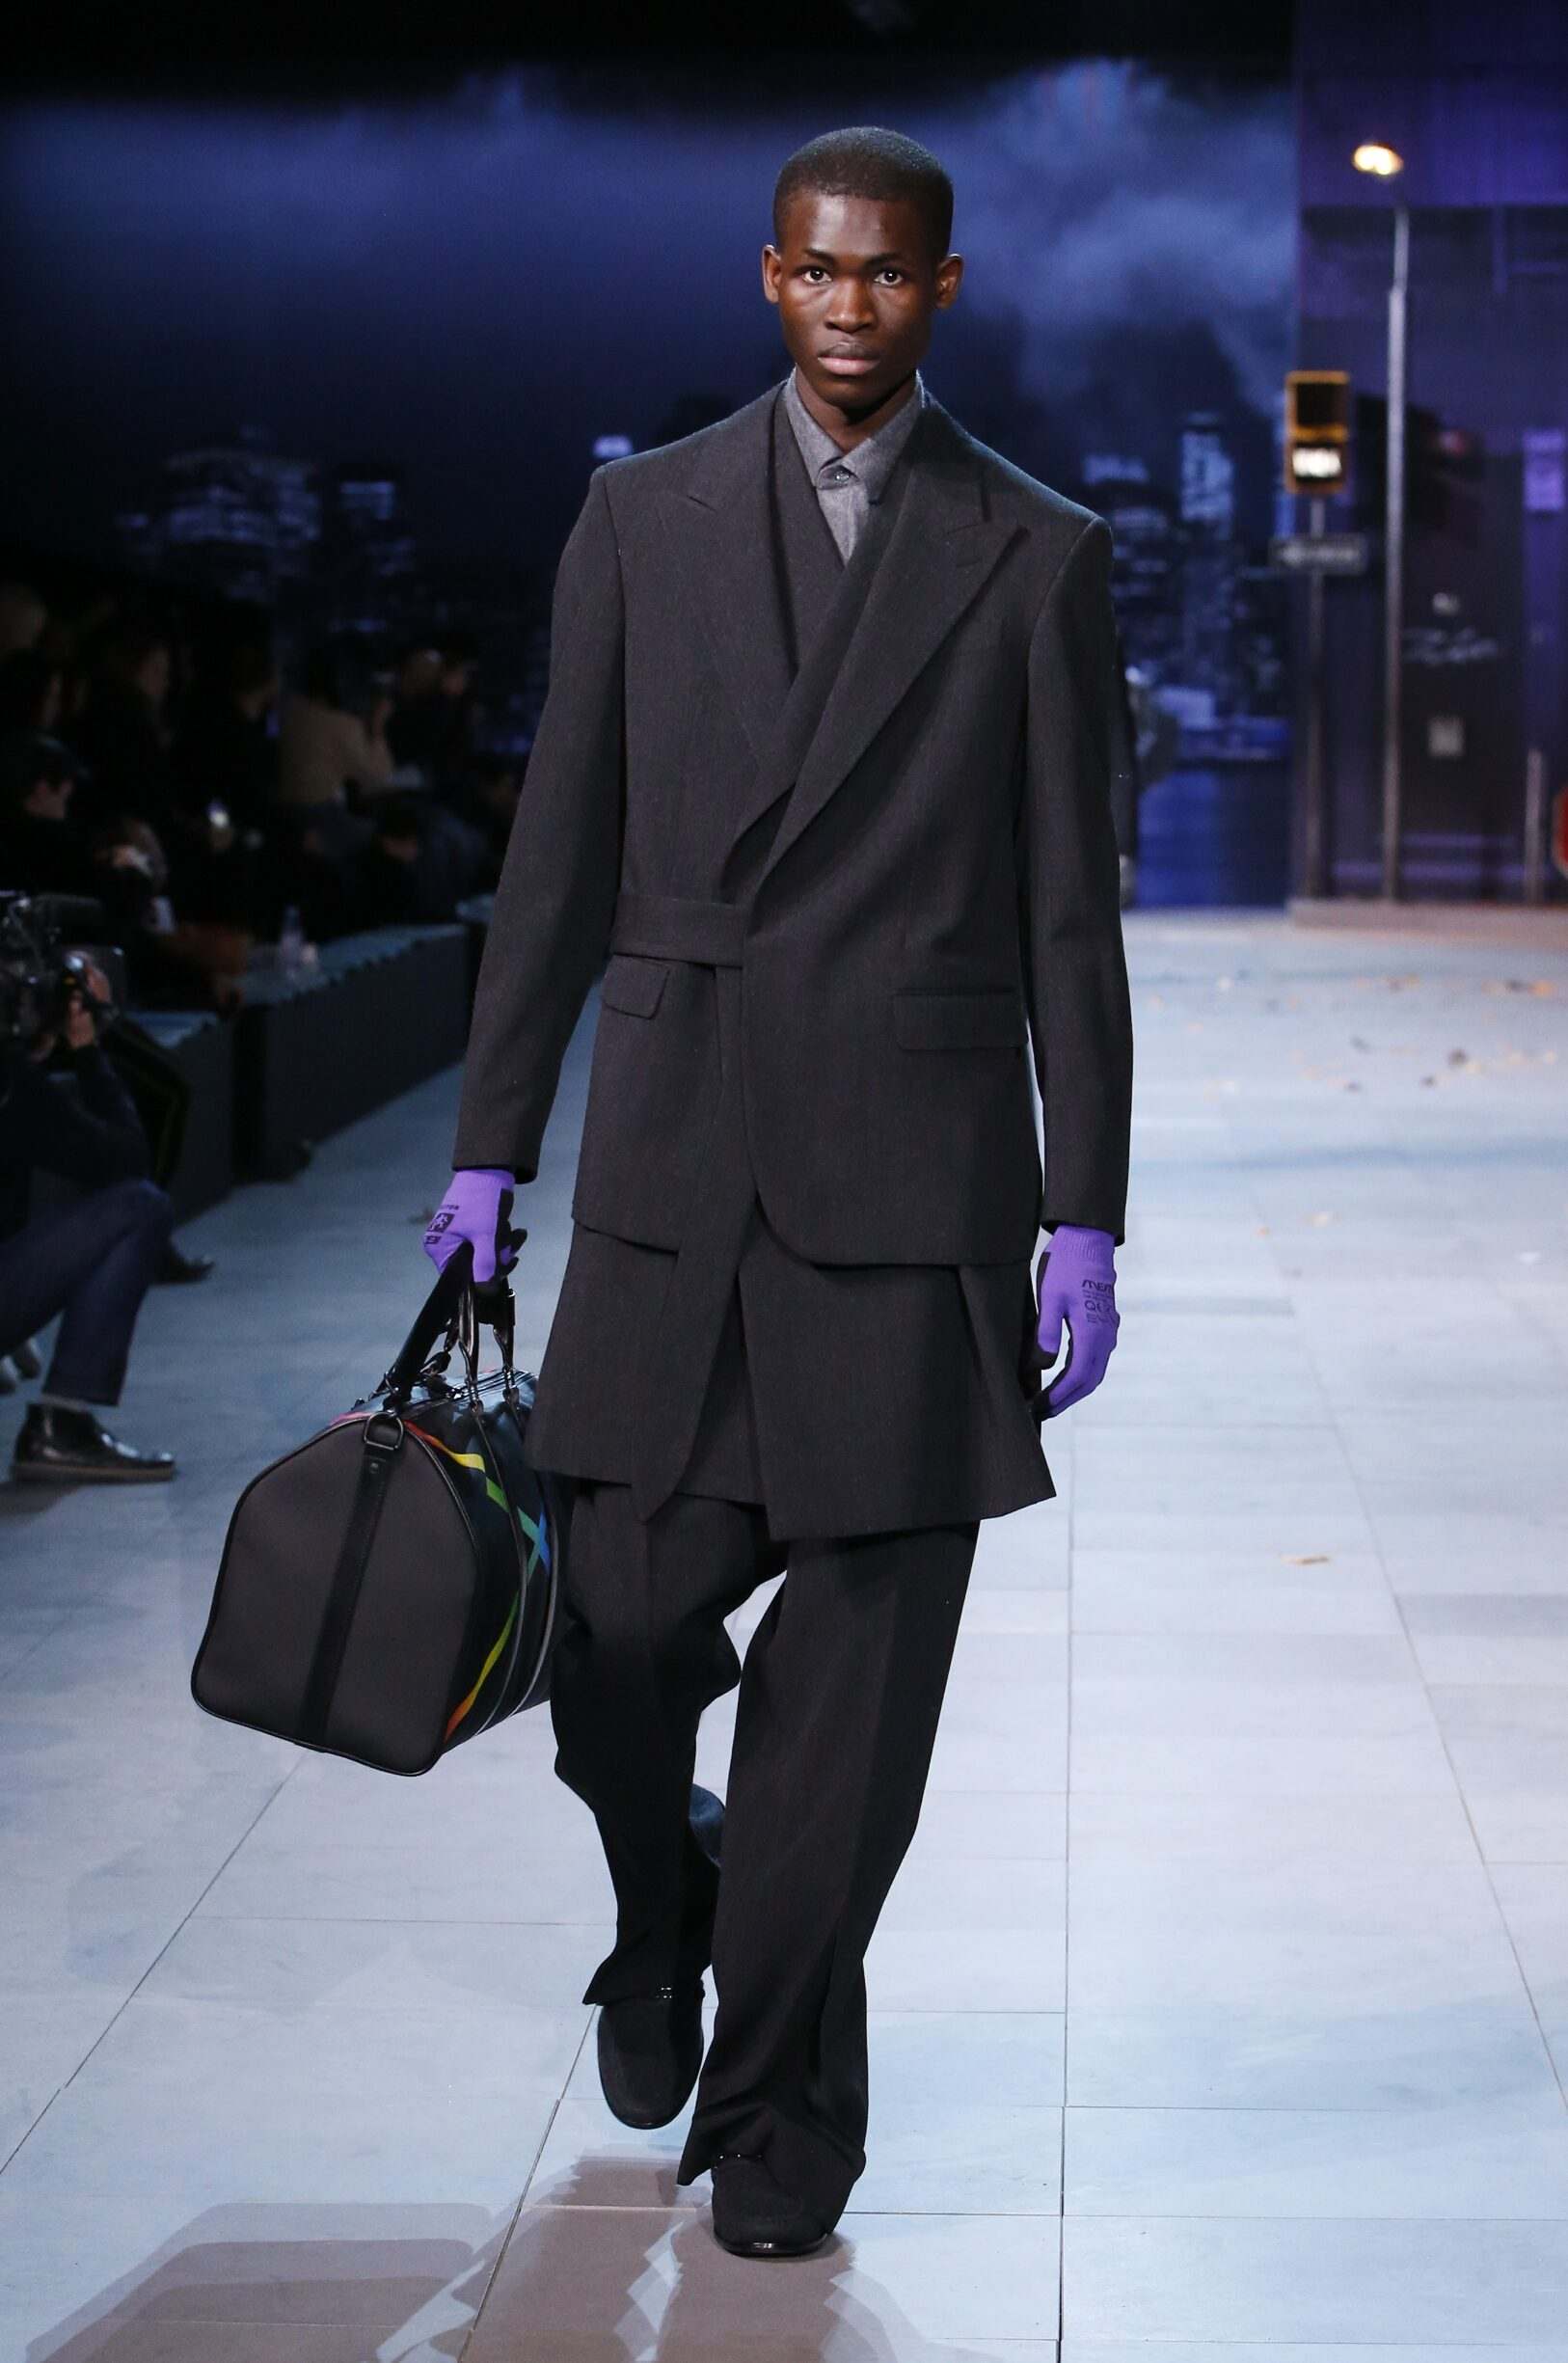 Louis Vuitton Paris Fashion Week Menswear Trends